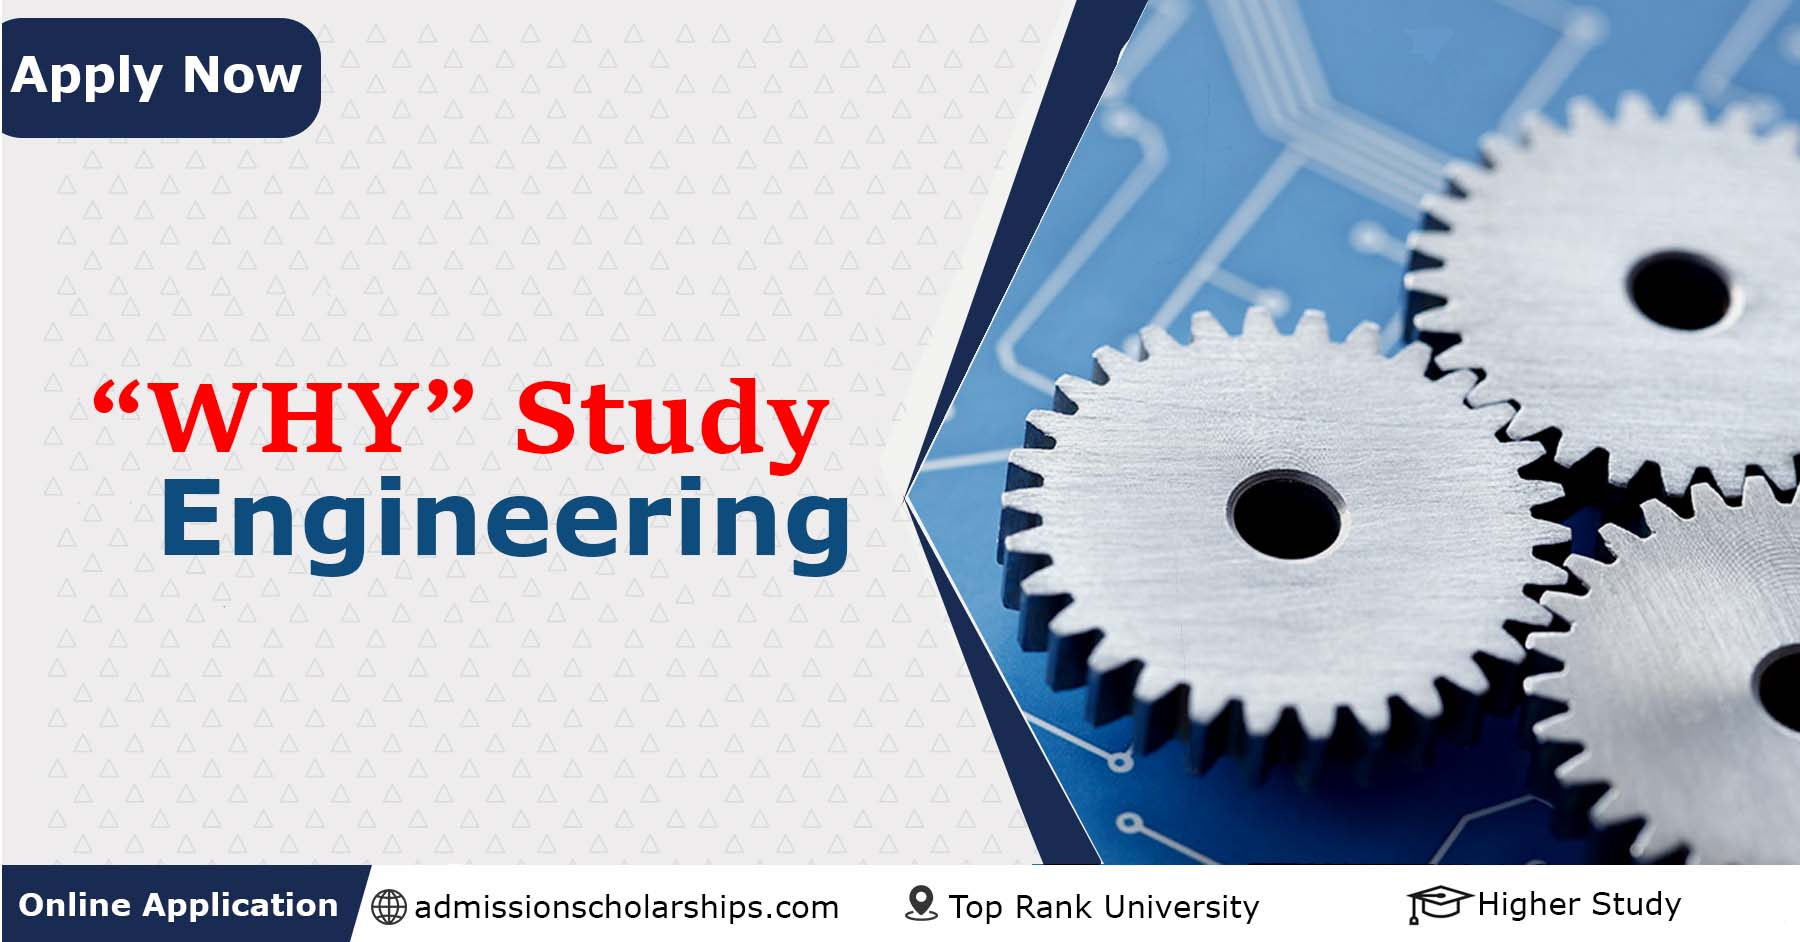 Why Study Engineering? - Top 7 Reasons (Verified by Professionals)